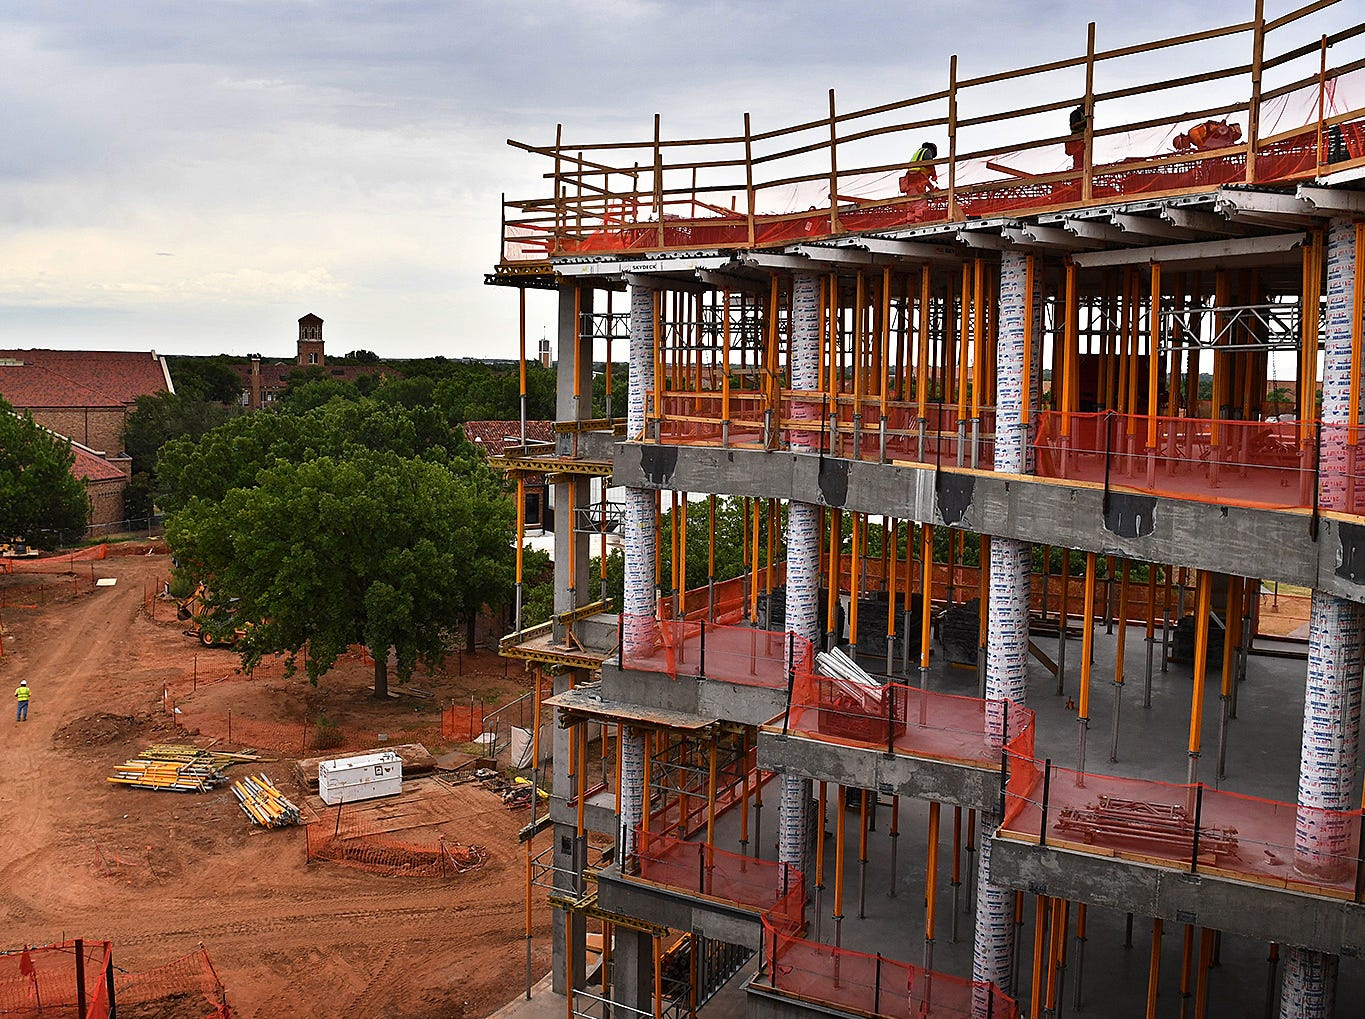 The view looking east at the tower of the Hardin Administration Building from the fourth floor of the Midwestern State University Health Sciences and Human Services building under construction.